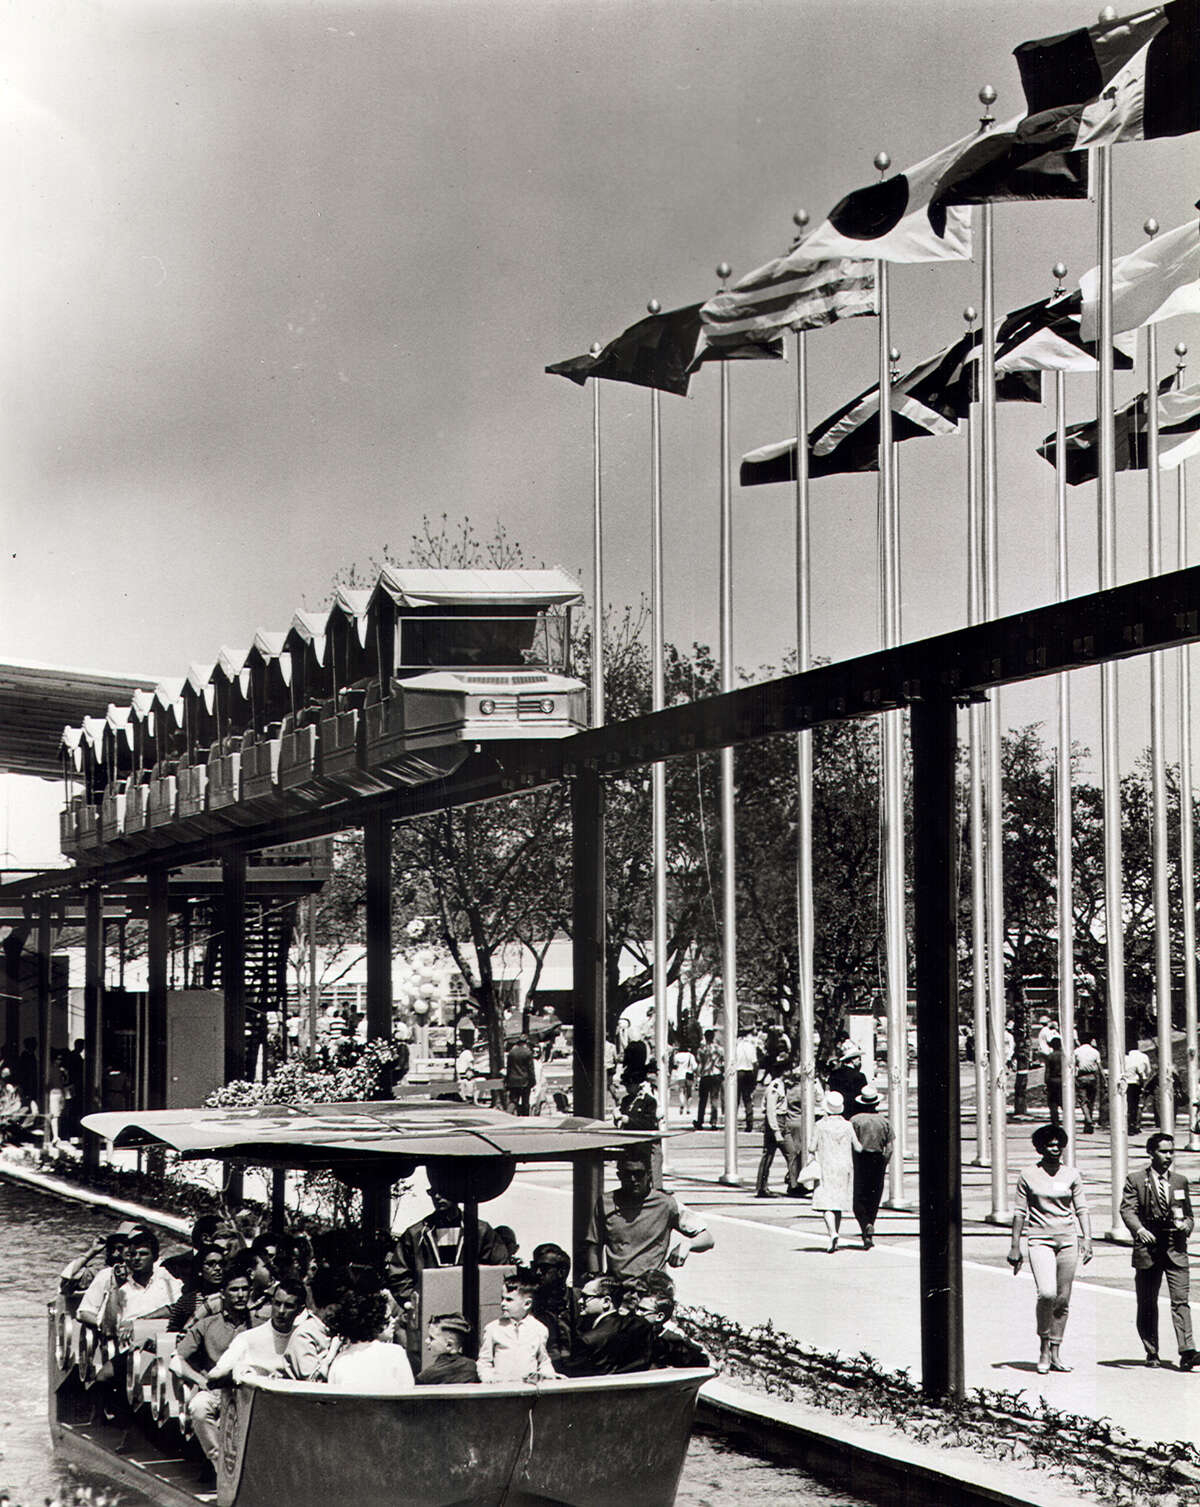 HemisFair '68's mini-monorail consisted of ten 40-passenger trains, each with 10 cars, that ferried 4,000 to 4,500 persons per hour across the fair on the 1½-mile long track at a speed of 15 mph.